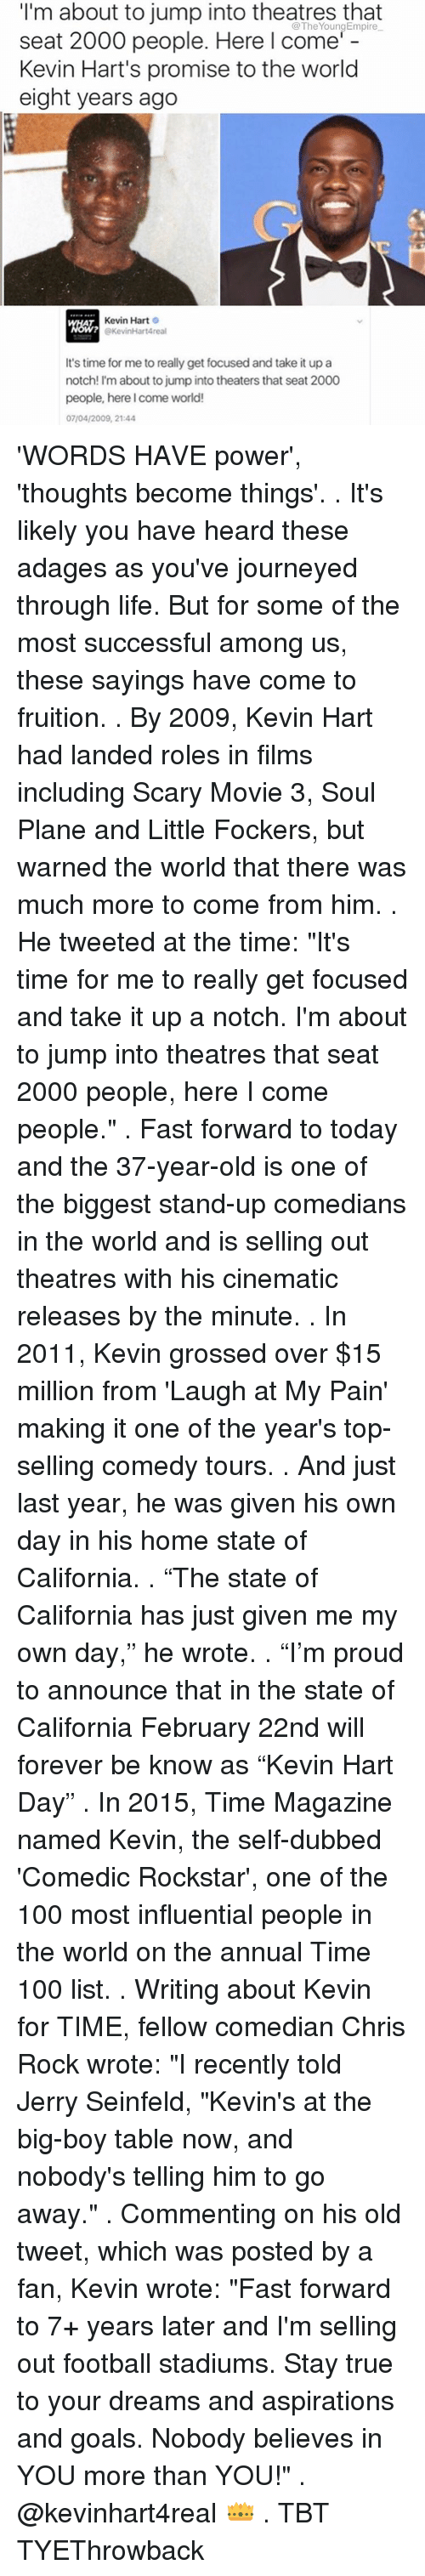 "scari movie: I'm about to jump into theatres that  seat 2000 people. Here I come'  Kevin Hart's promise to the world  eight years ago  Kevin Hart  O  @KevinHartAreal  It's time for me to really get focused and take it up a  notch! I'm about to jump into theaters that seat 2000  people, here I come world!  07/04/2009, 21:44 'WORDS HAVE power', 'thoughts become things'. . It's likely you have heard these adages as you've journeyed through life. But for some of the most successful among us, these sayings have come to fruition. . By 2009, Kevin Hart had landed roles in films including Scary Movie 3, Soul Plane and Little Fockers, but warned the world that there was much more to come from him. . He tweeted at the time: ""It's time for me to really get focused and take it up a notch. I'm about to jump into theatres that seat 2000 people, here I come people."" . Fast forward to today and the 37-year-old is one of the biggest stand-up comedians in the world and is selling out theatres with his cinematic releases by the minute. . In 2011, Kevin grossed over $15 million from 'Laugh at My Pain' making it one of the year's top-selling comedy tours. . And just last year, he was given his own day in his home state of California. . ""The state of California has just given me my own day,"" he wrote. . ""I'm proud to announce that in the state of California February 22nd will forever be know as ""Kevin Hart Day"" . In 2015, Time Magazine named Kevin, the self-dubbed 'Comedic Rockstar', one of the 100 most influential people in the world on the annual Time 100 list. . Writing about Kevin for TIME, fellow comedian Chris Rock wrote: ""I recently told Jerry Seinfeld, ""Kevin's at the big-boy table now, and nobody's telling him to go away."" . Commenting on his old tweet, which was posted by a fan, Kevin wrote: ""Fast forward to 7+ years later and I'm selling out football stadiums. Stay true to your dreams and aspirations and goals. Nobody believes in YOU more than YOU!"" . @kevinhart4real 👑 . TBT TYEThrowback"